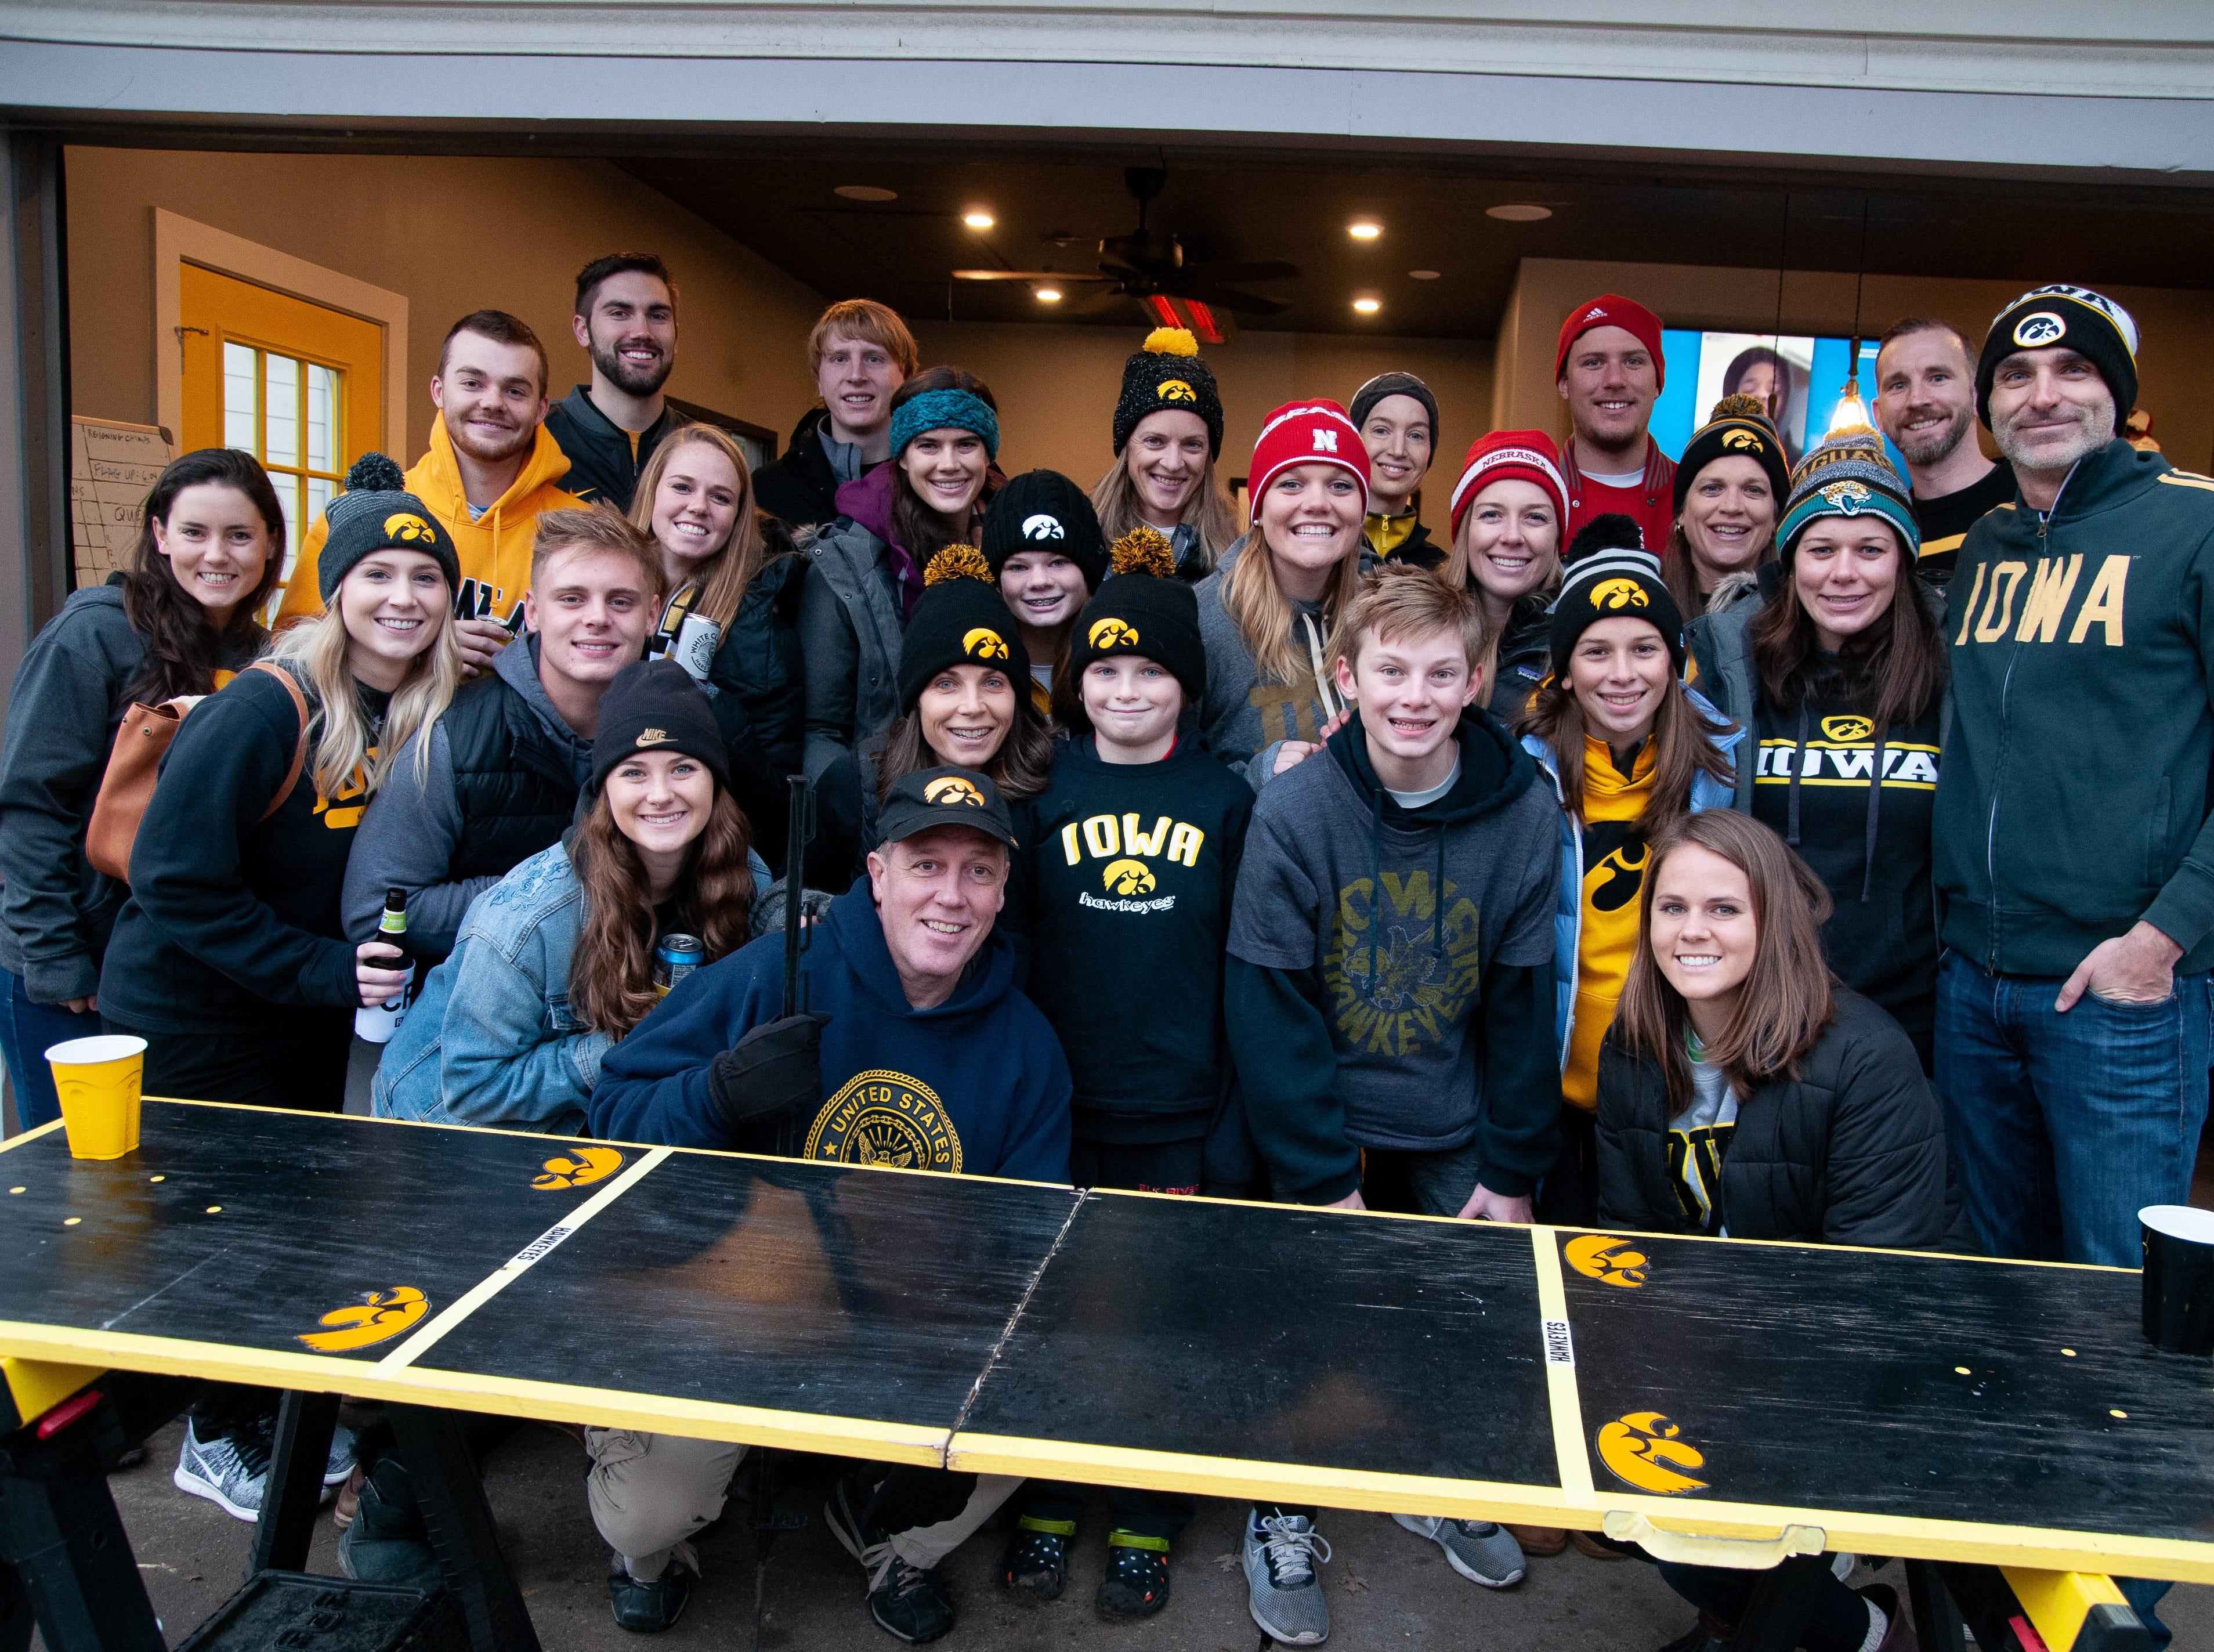 Pete Peraud's 1145 Melrose Tailgate, of Coralville, Friday, Nov. 23, 2018, while tailgating before the Iowa game against Nebraska in Iowa City.